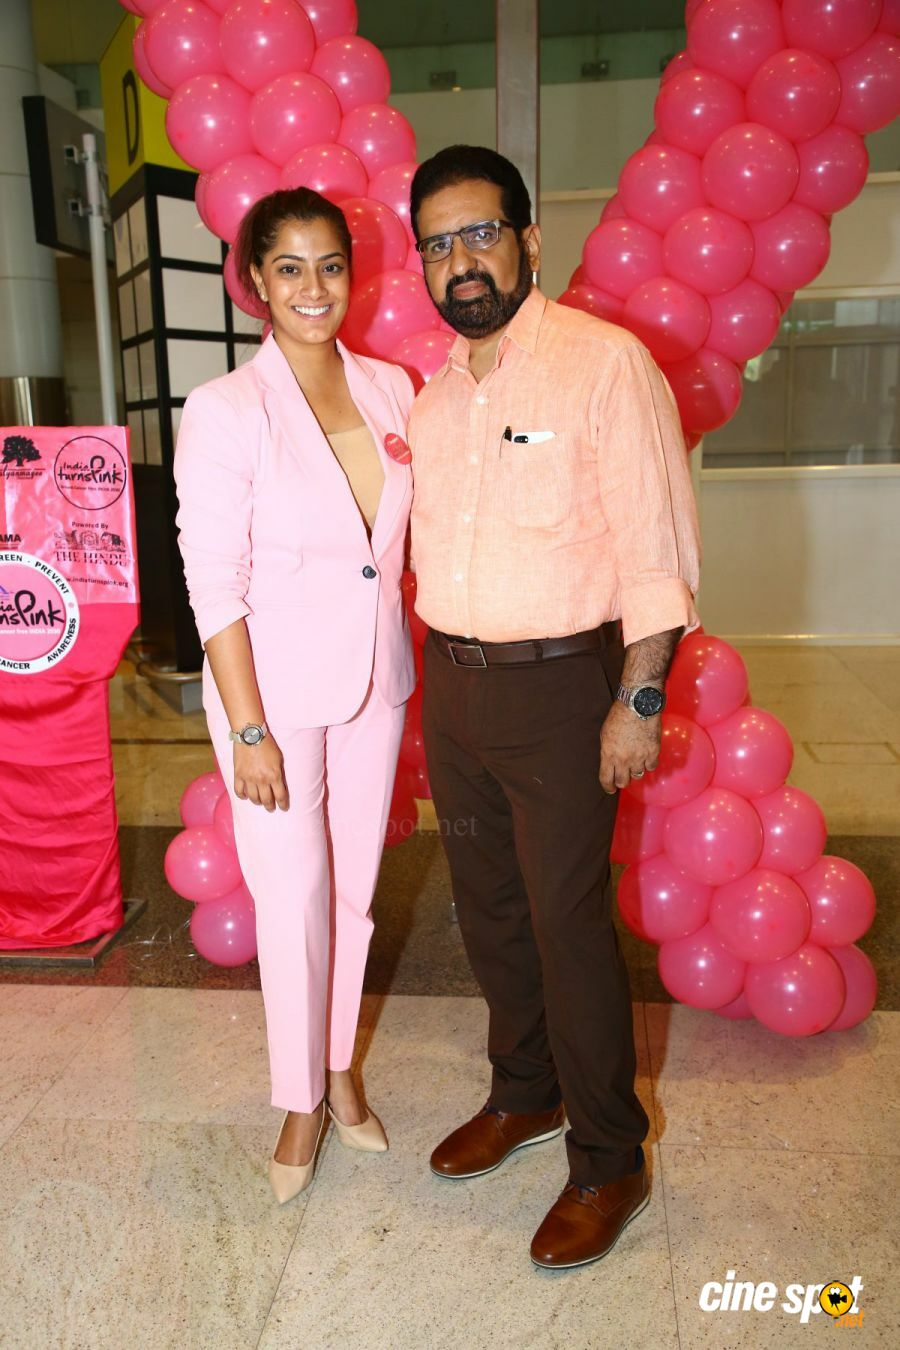 Namma Chennai Airport Turns Pink - PINKTOBER 2019 - Breast Cancer Free India - Event (41)